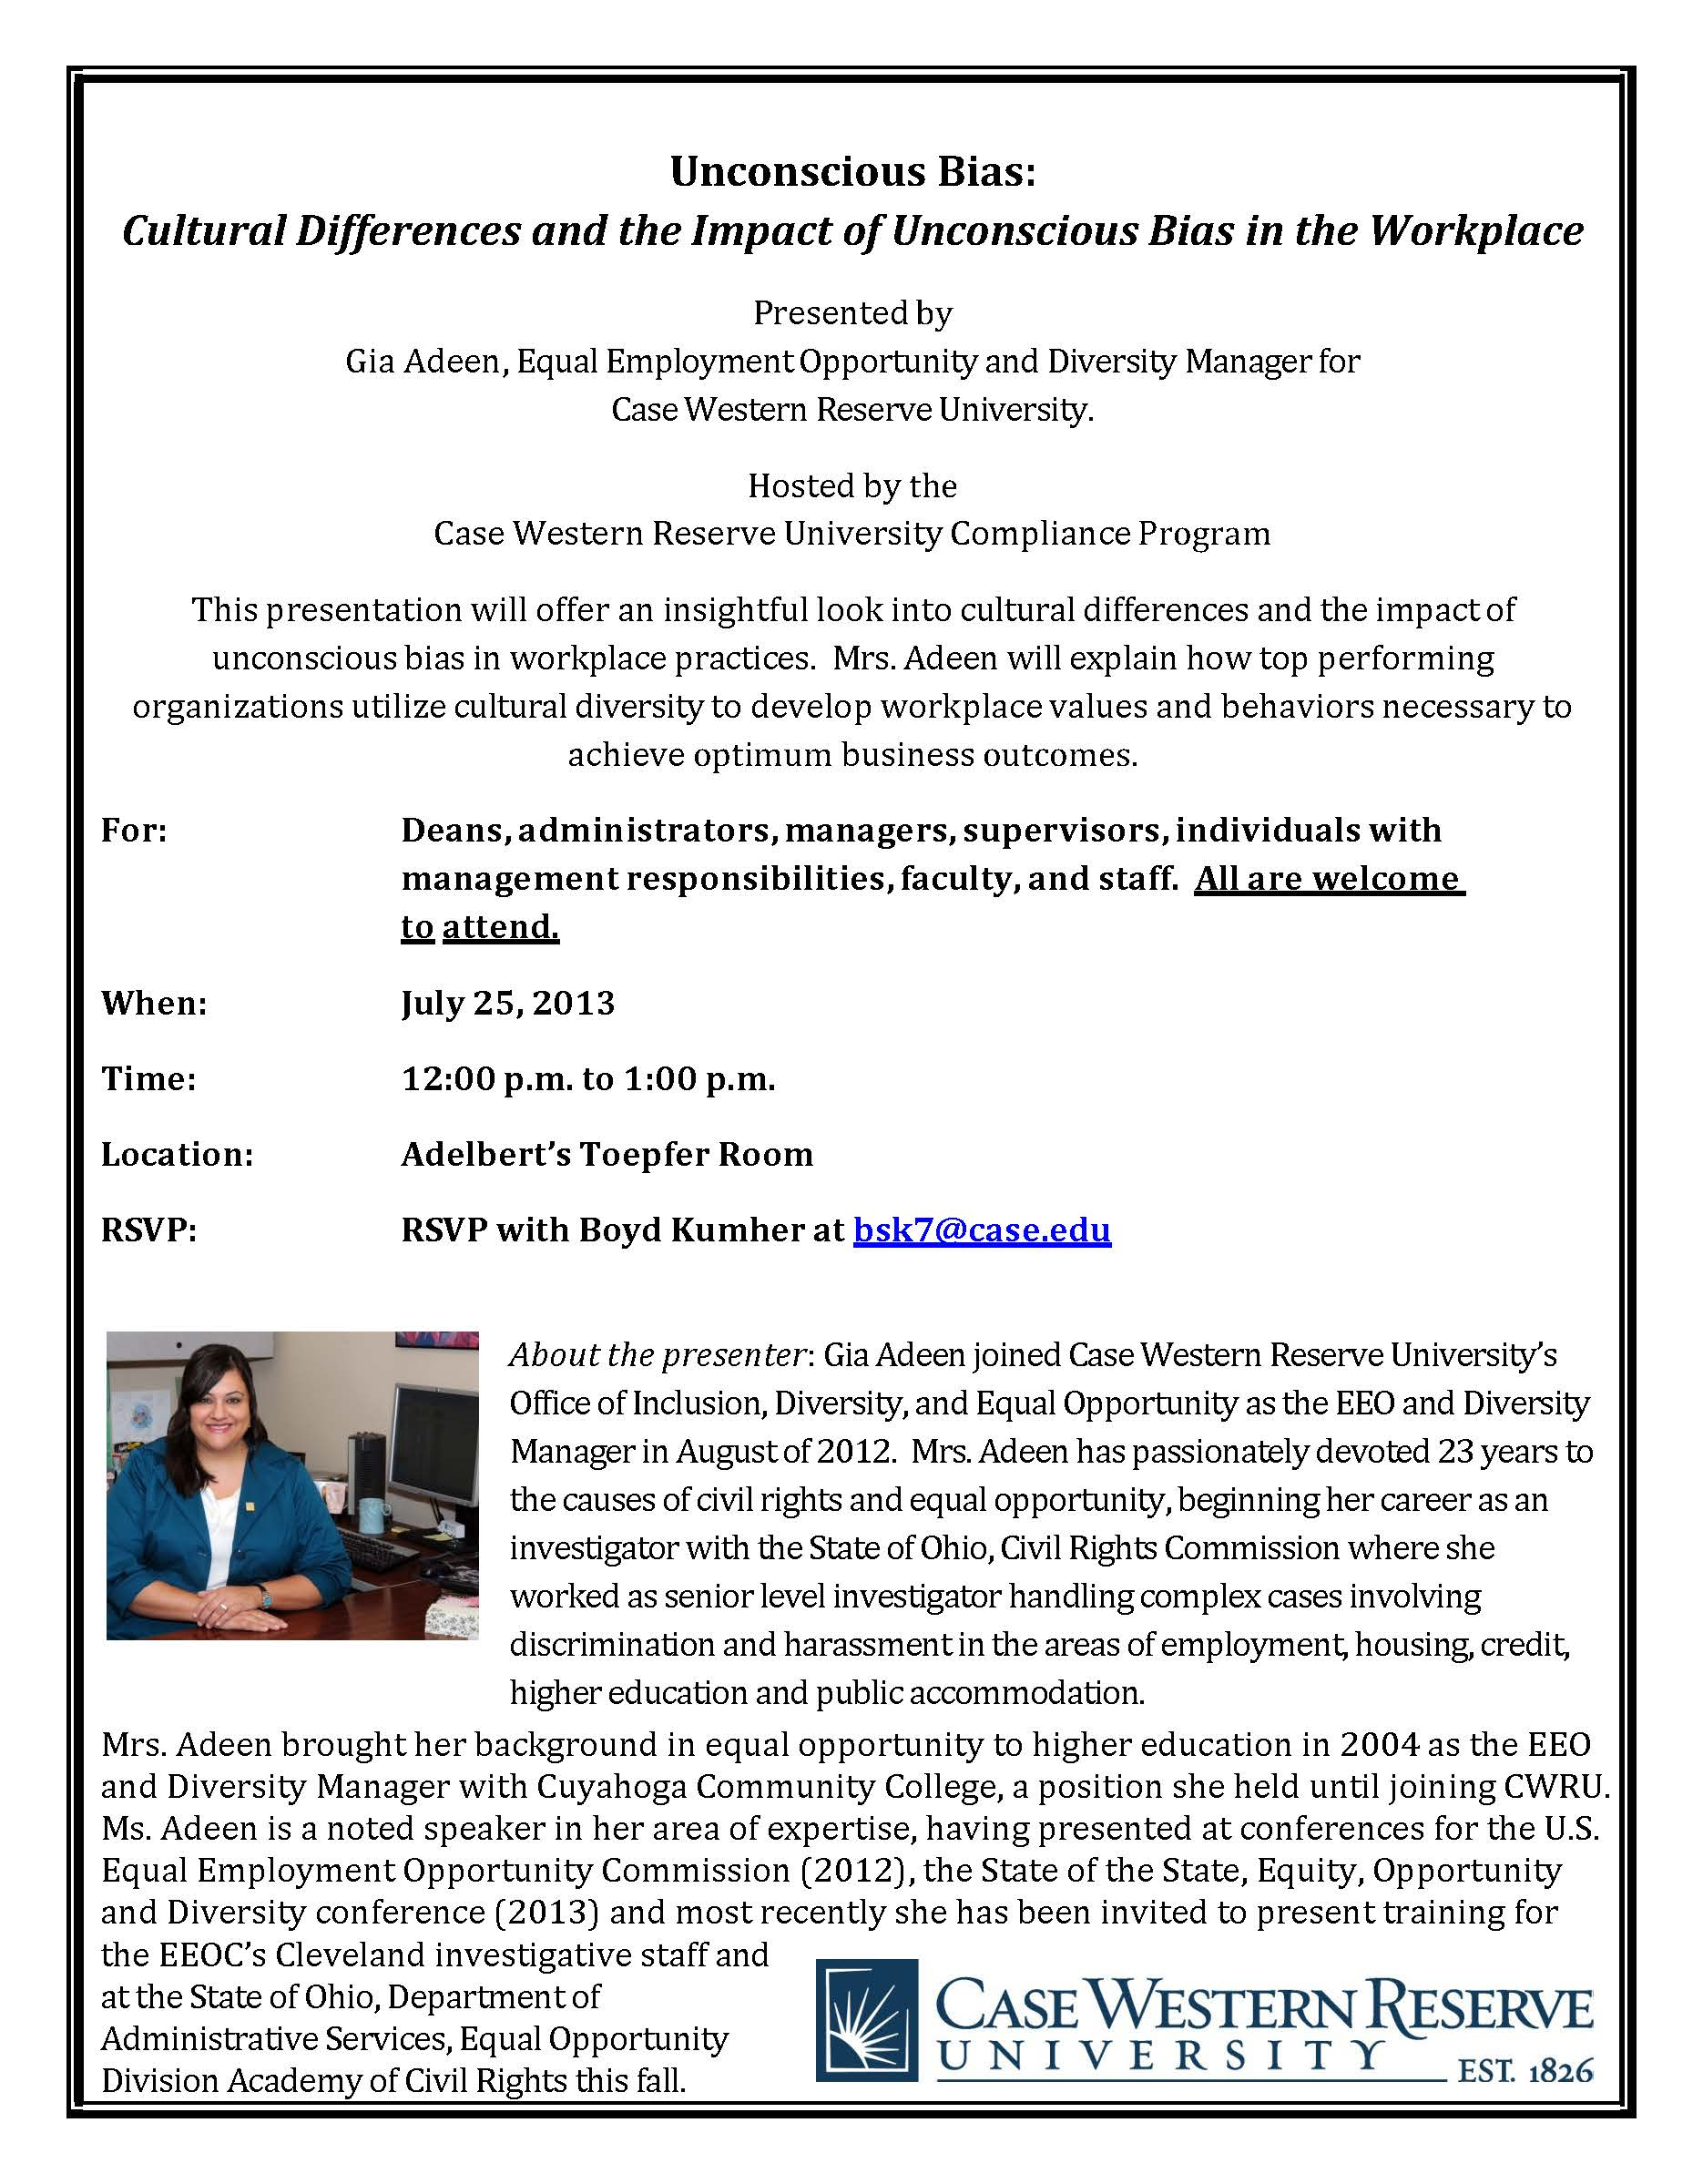 flier for Unconscious Bias in the Workplace presentation at CWRU